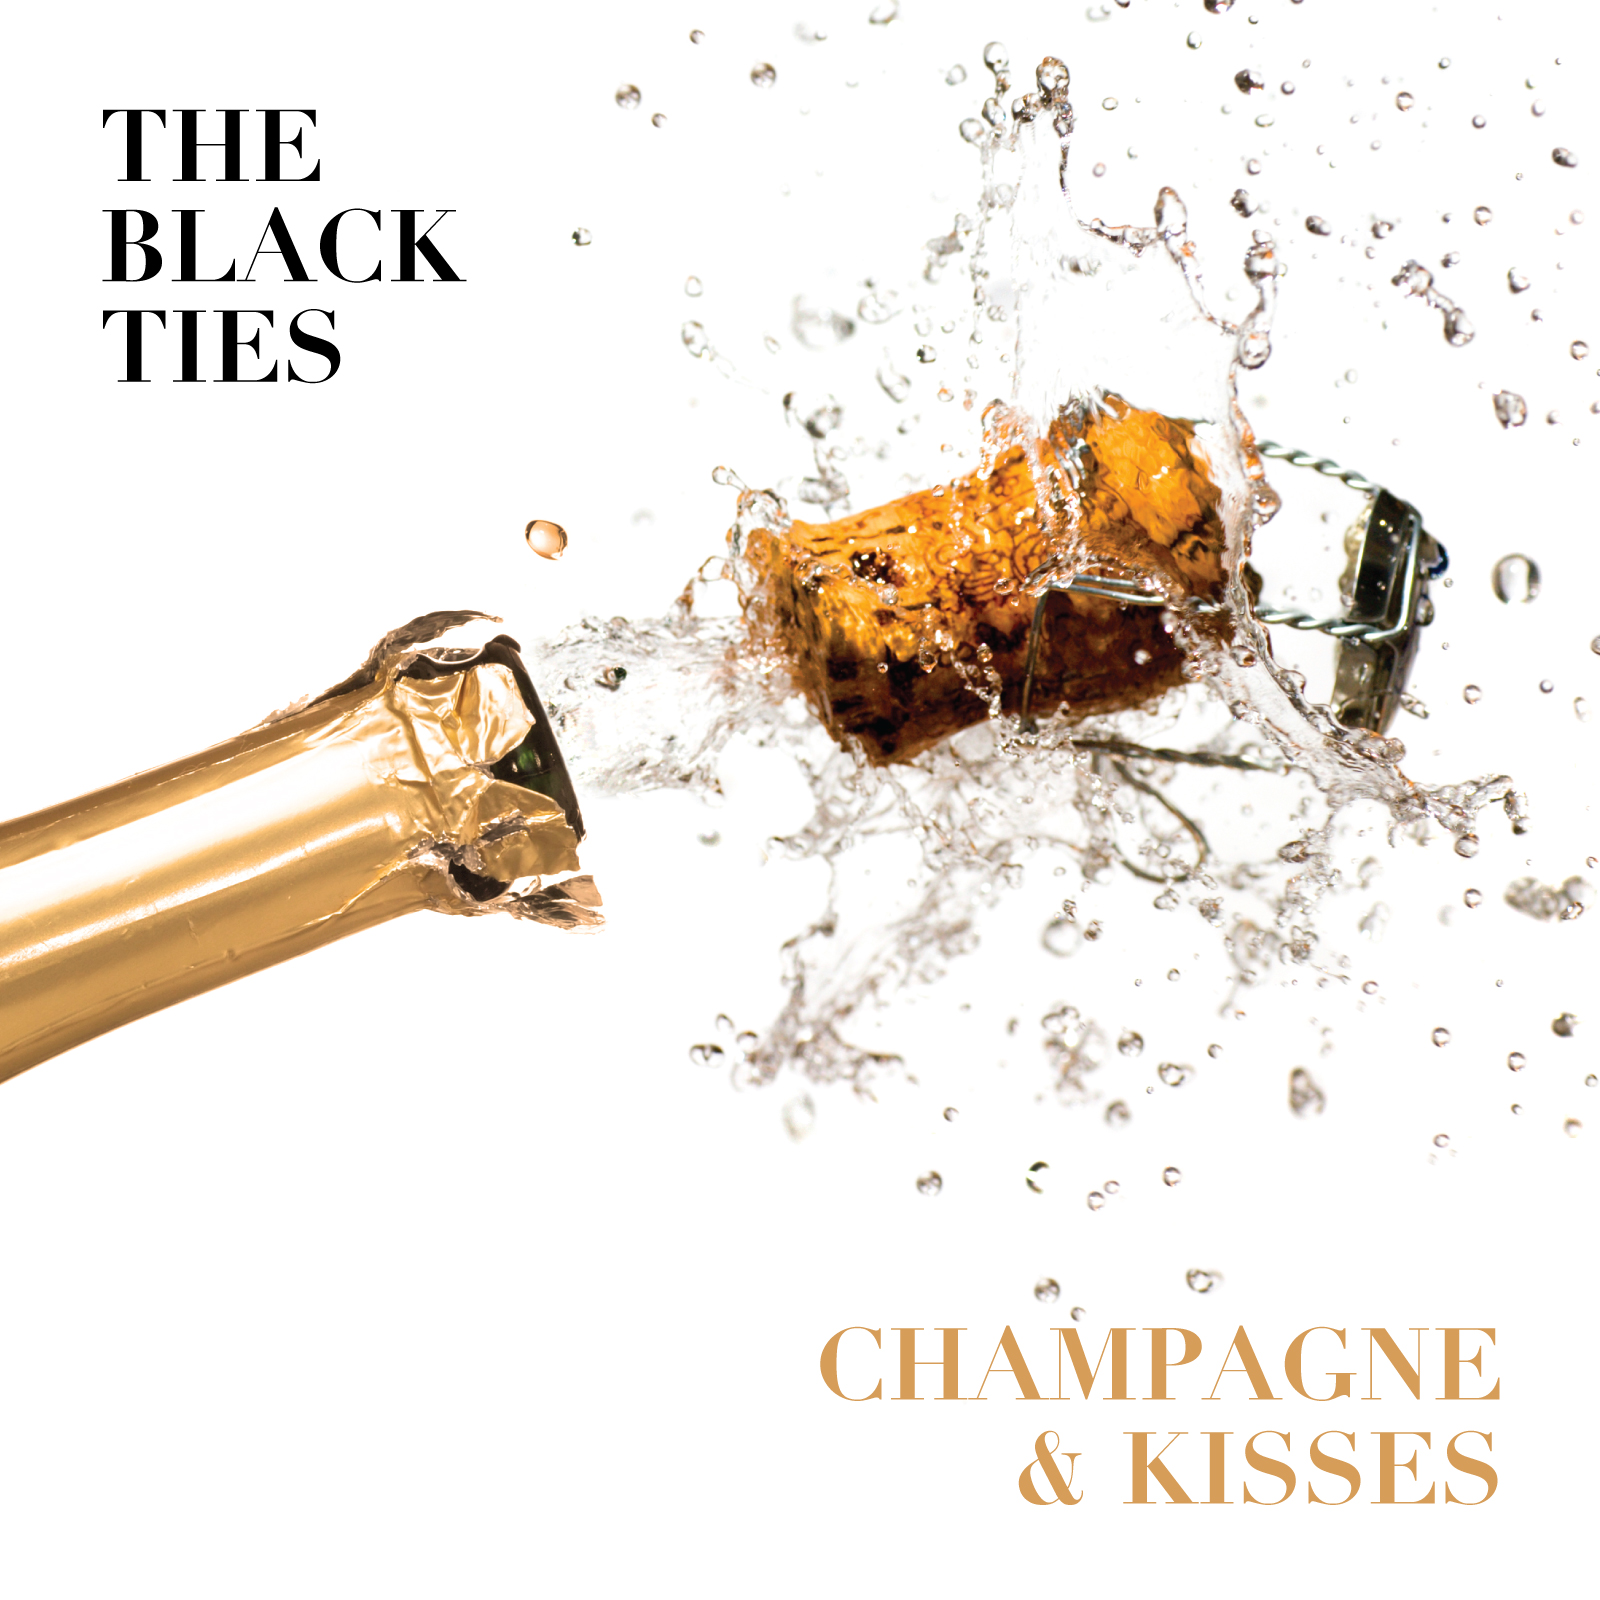 champagne-kisses-artwork-final